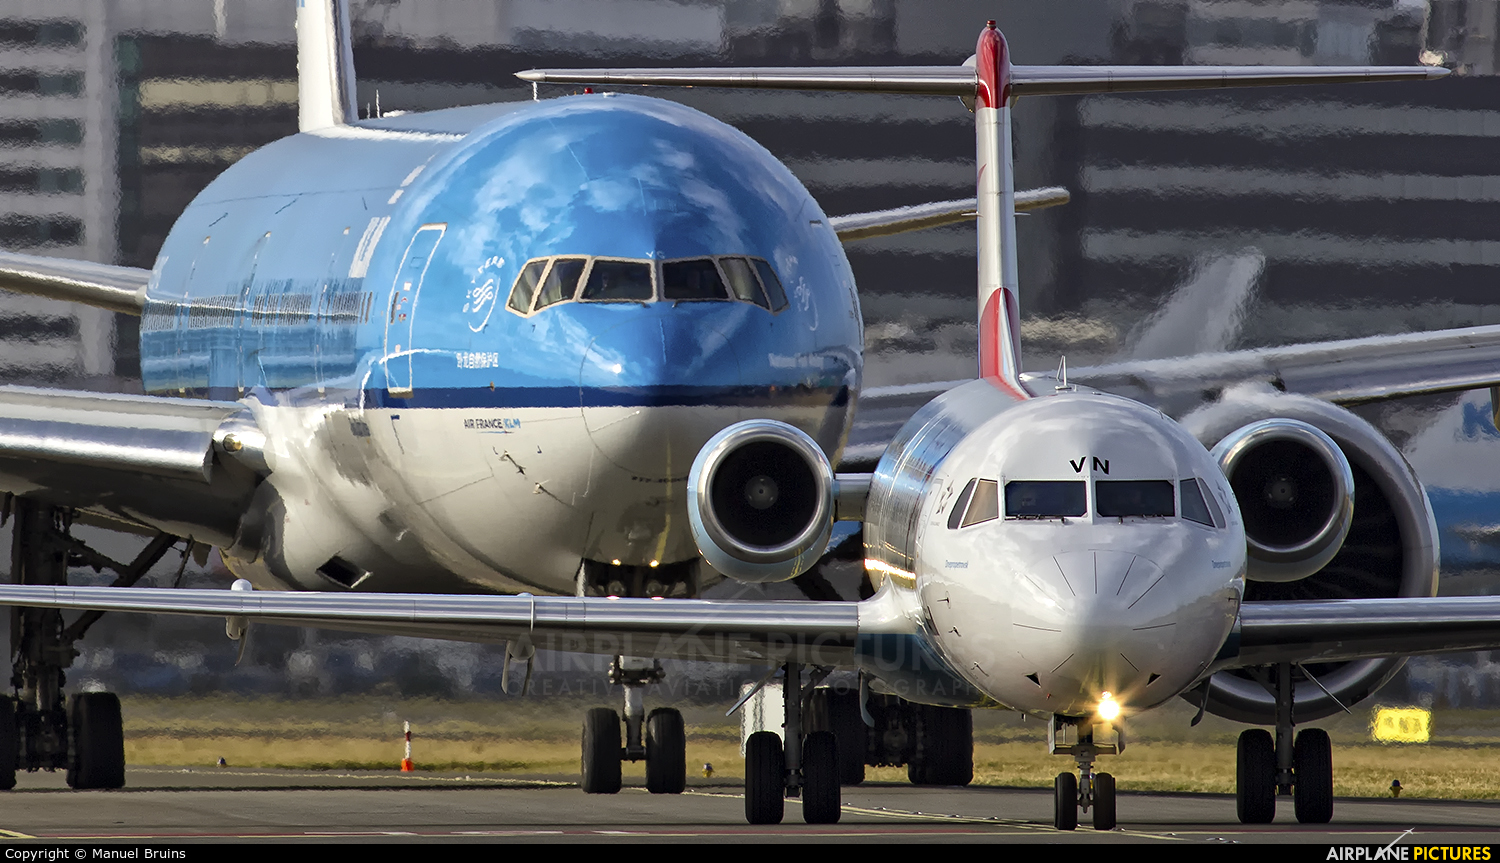 Austrian Airlines/Arrows/Tyrolean OE-LVN aircraft at Amsterdam - Schiphol